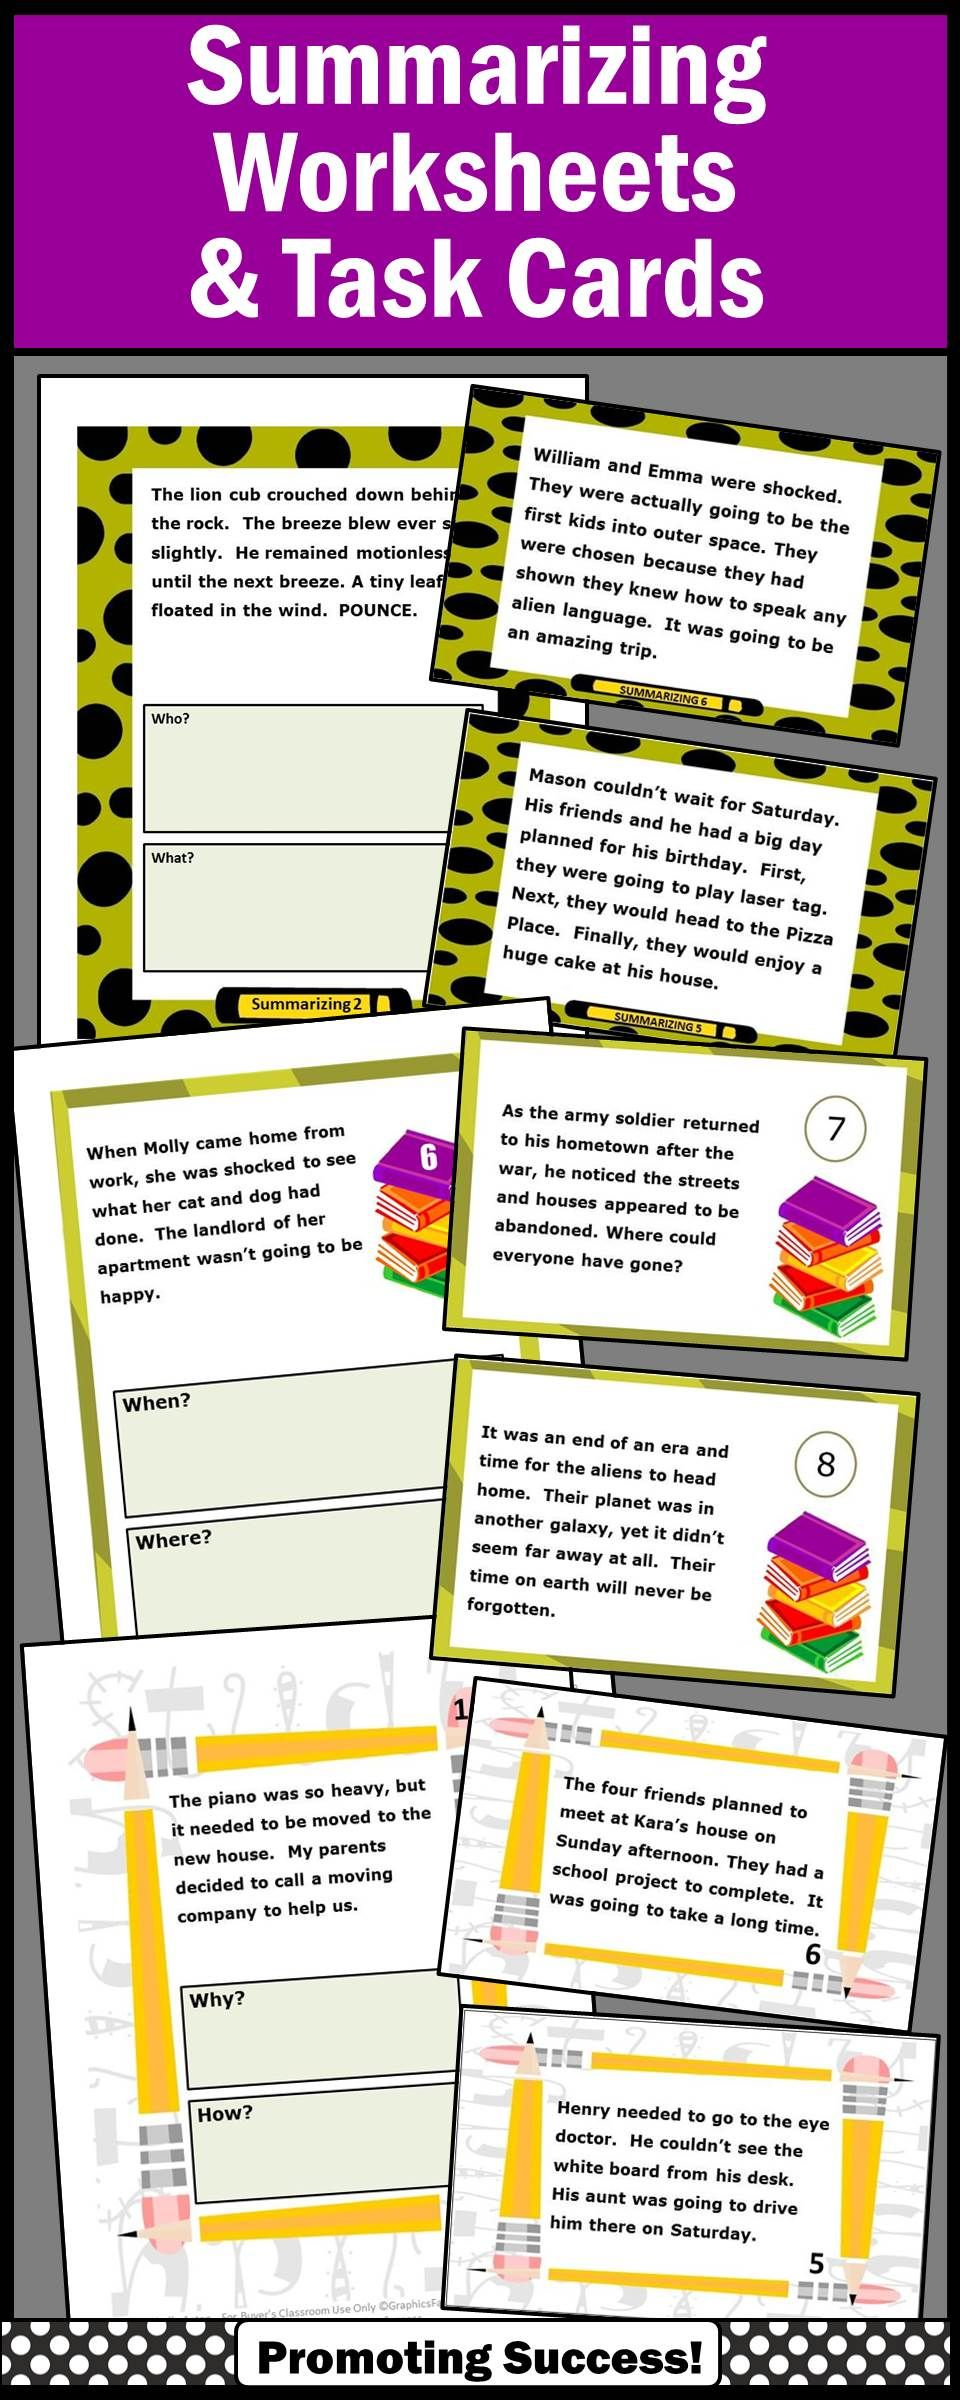 Worksheets Summarizing Worksheets For 4th Grade summarizing activities for 4th grade bundle wh questions worksheets in this you will receive task cards and elementary students to practice summariz